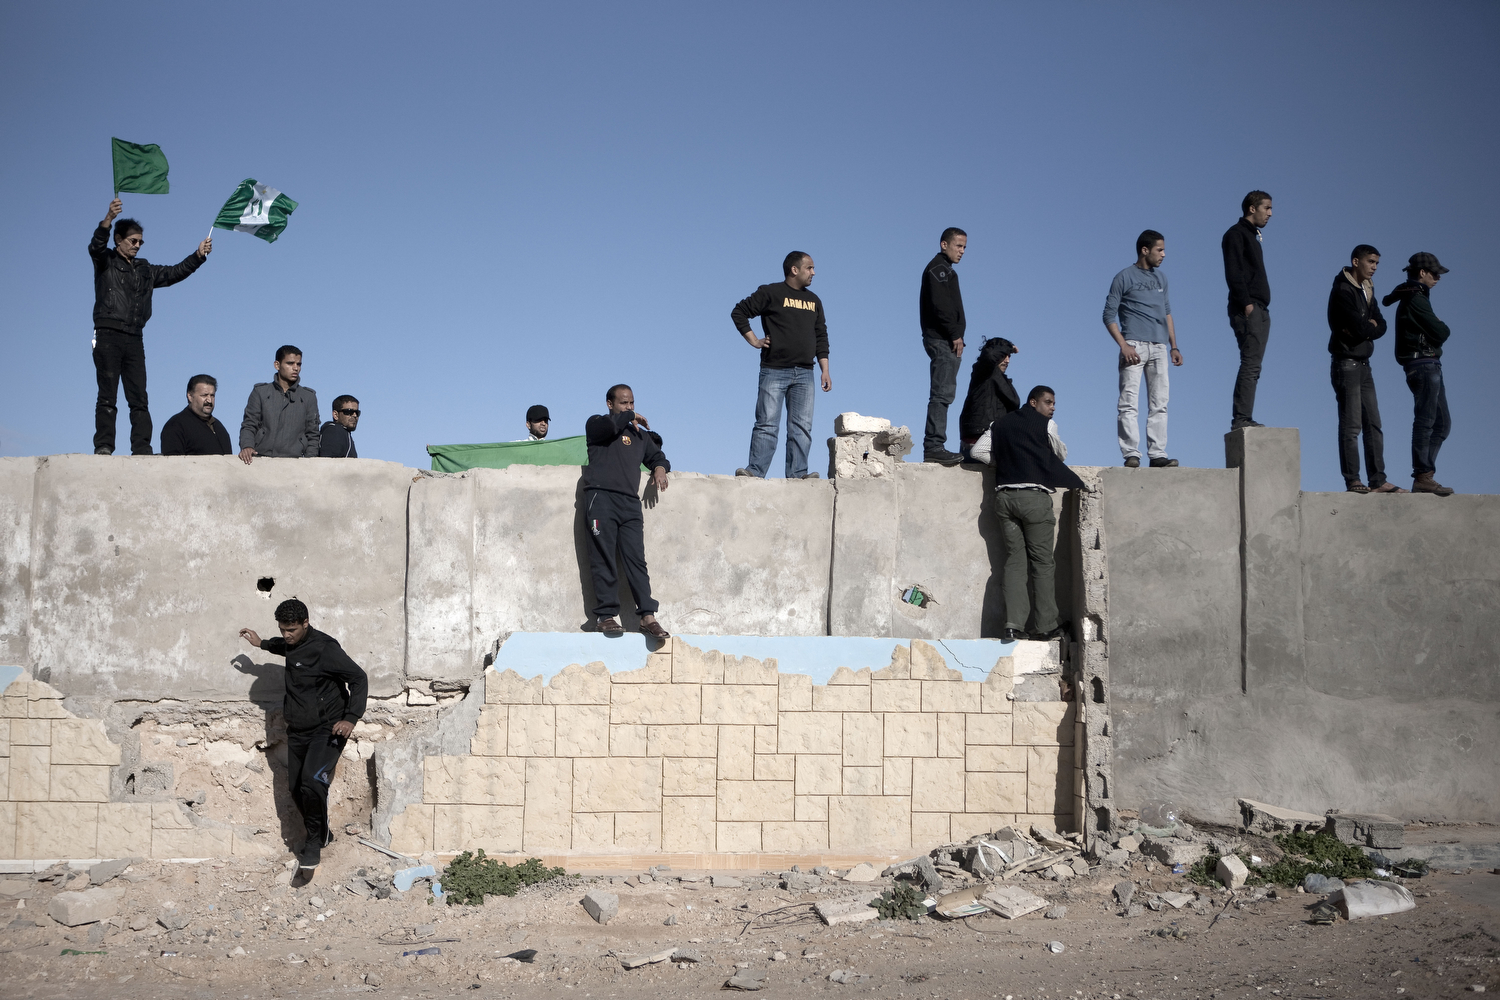 Men await the arrival of bodies, March 20, 2011.